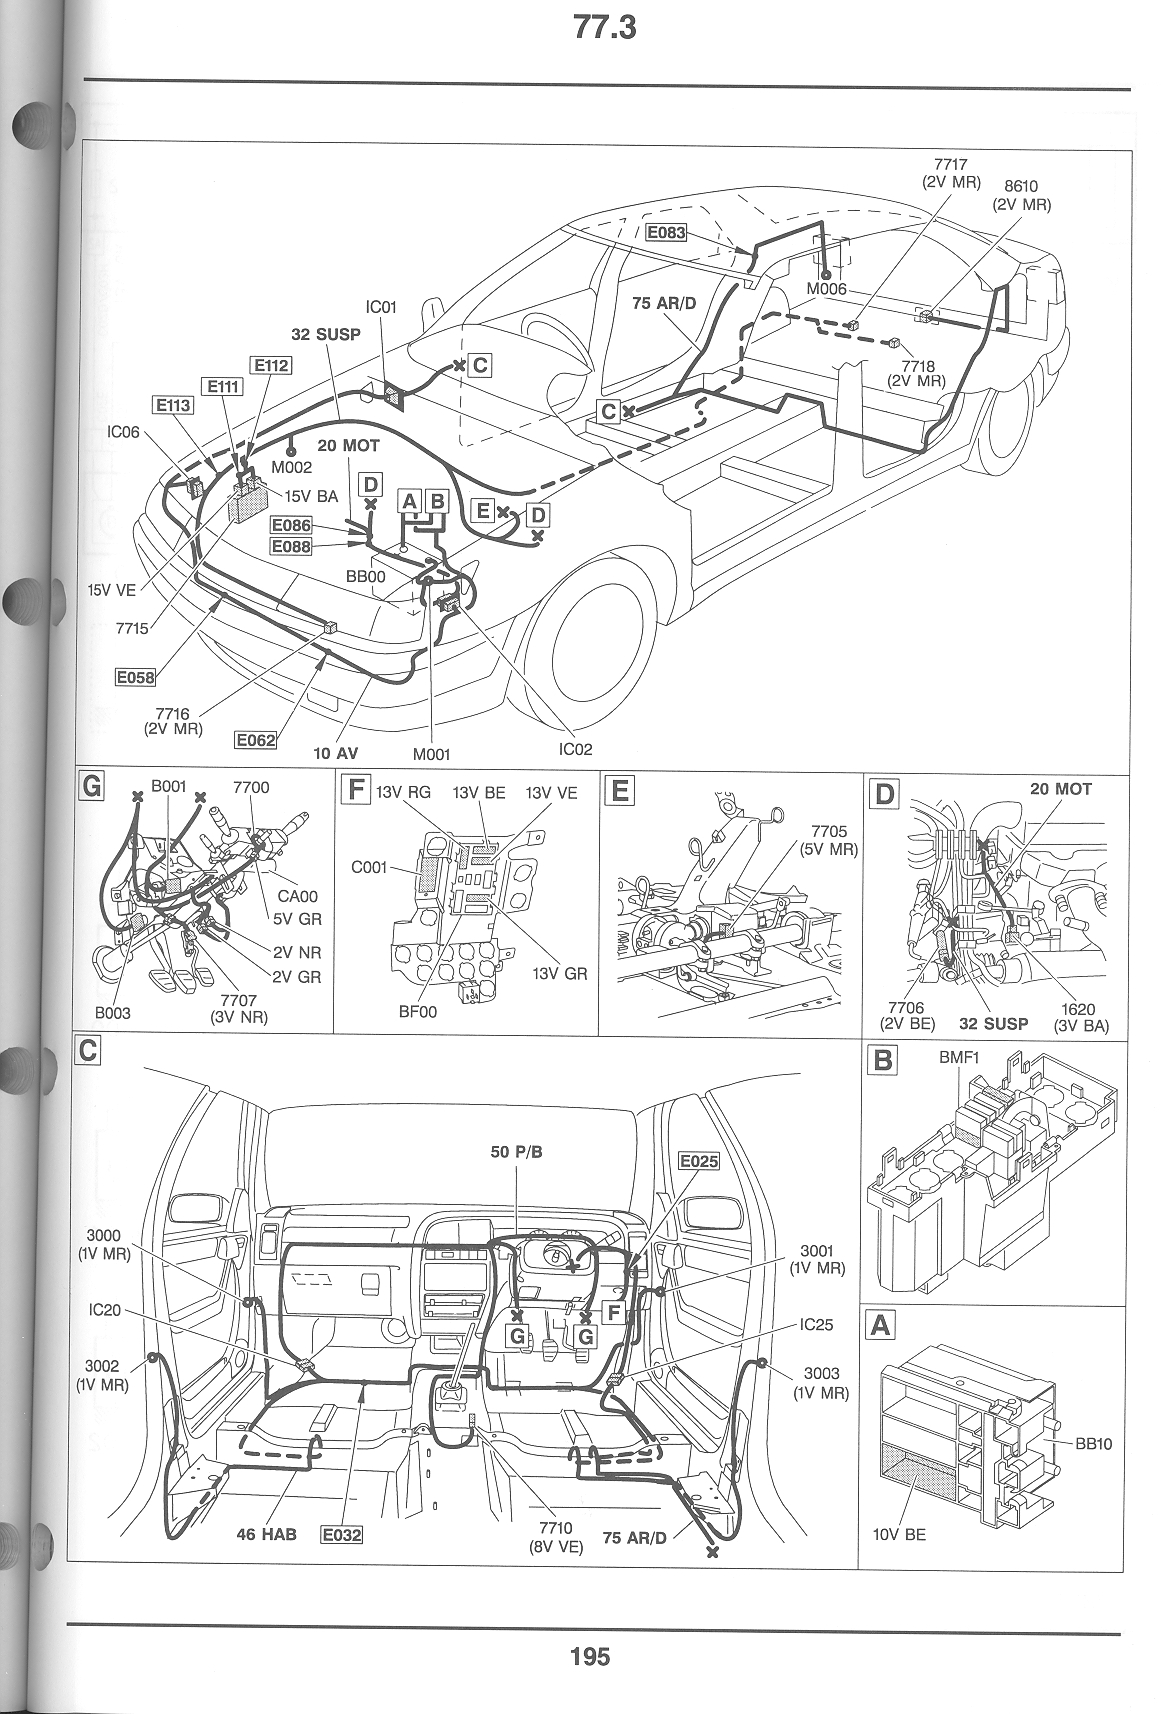 xantia vsx factory manual page scan request